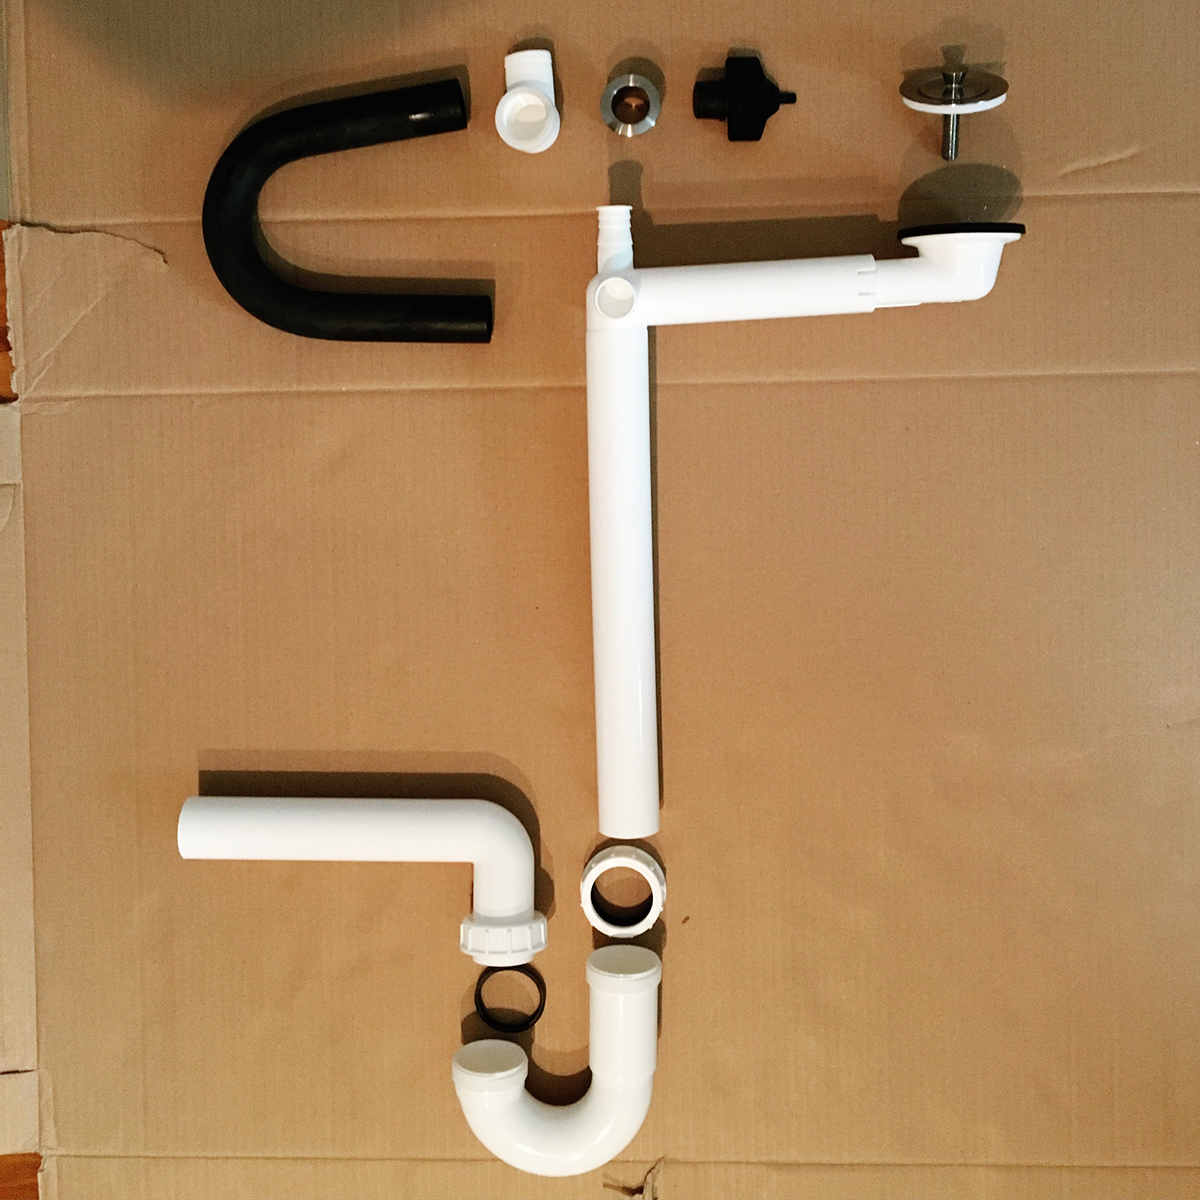 Ordinaire IKEA Plumbing Parts.JPG